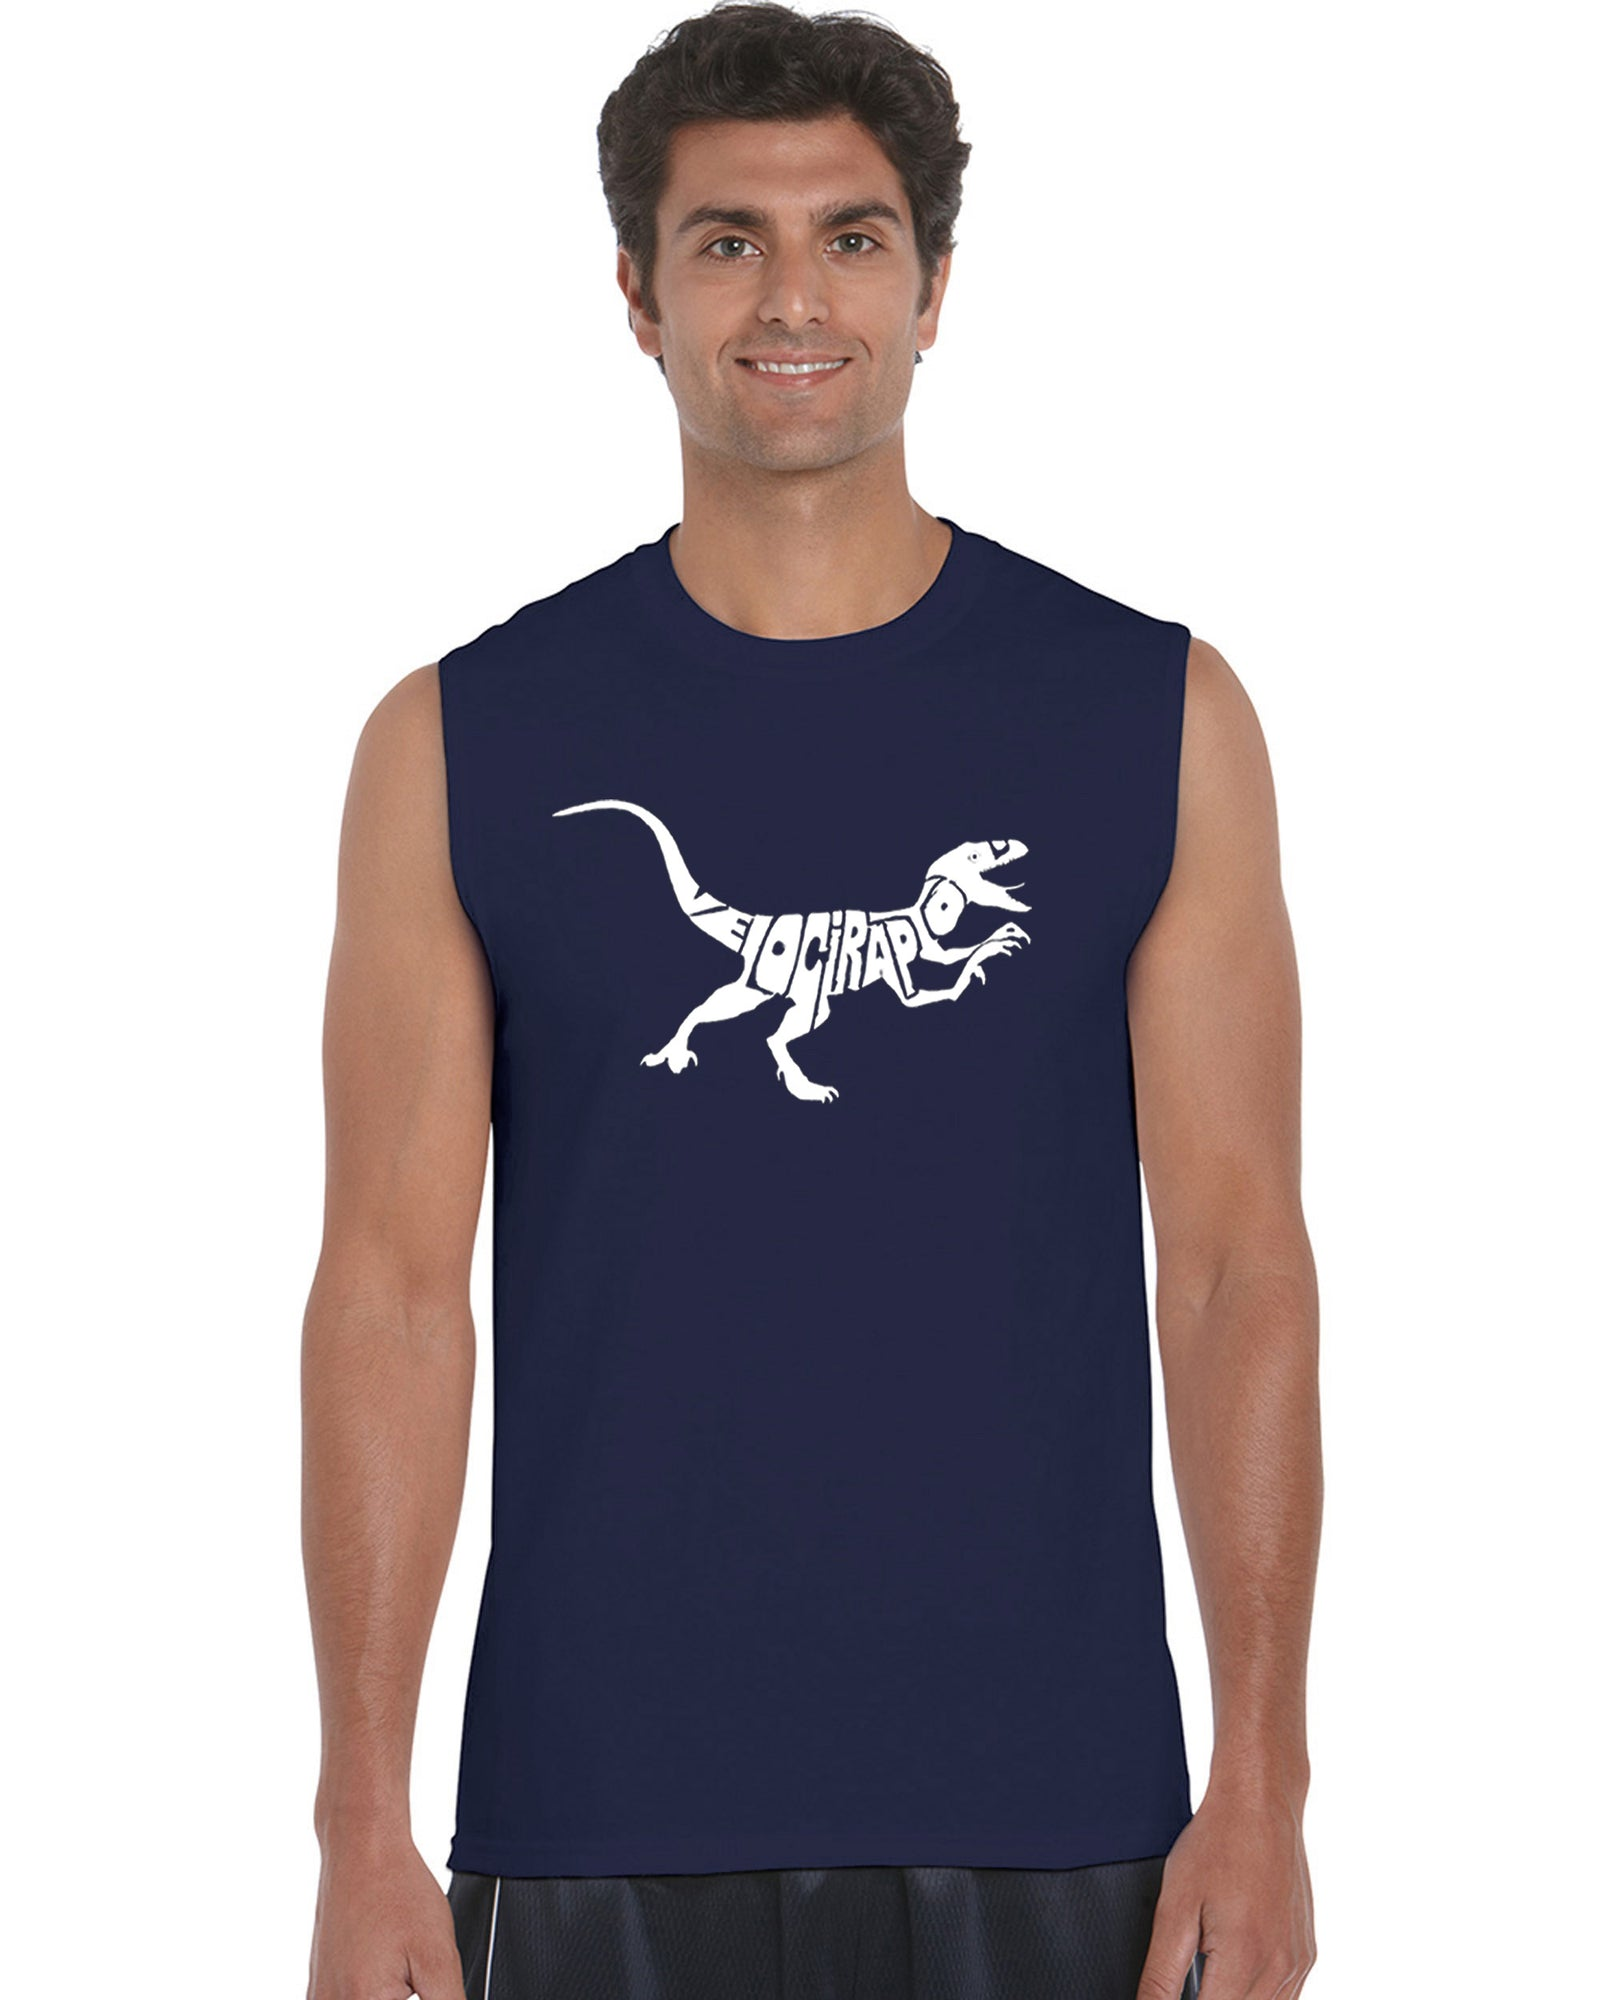 Men's Sleeveless T-shirt - Velociraptor